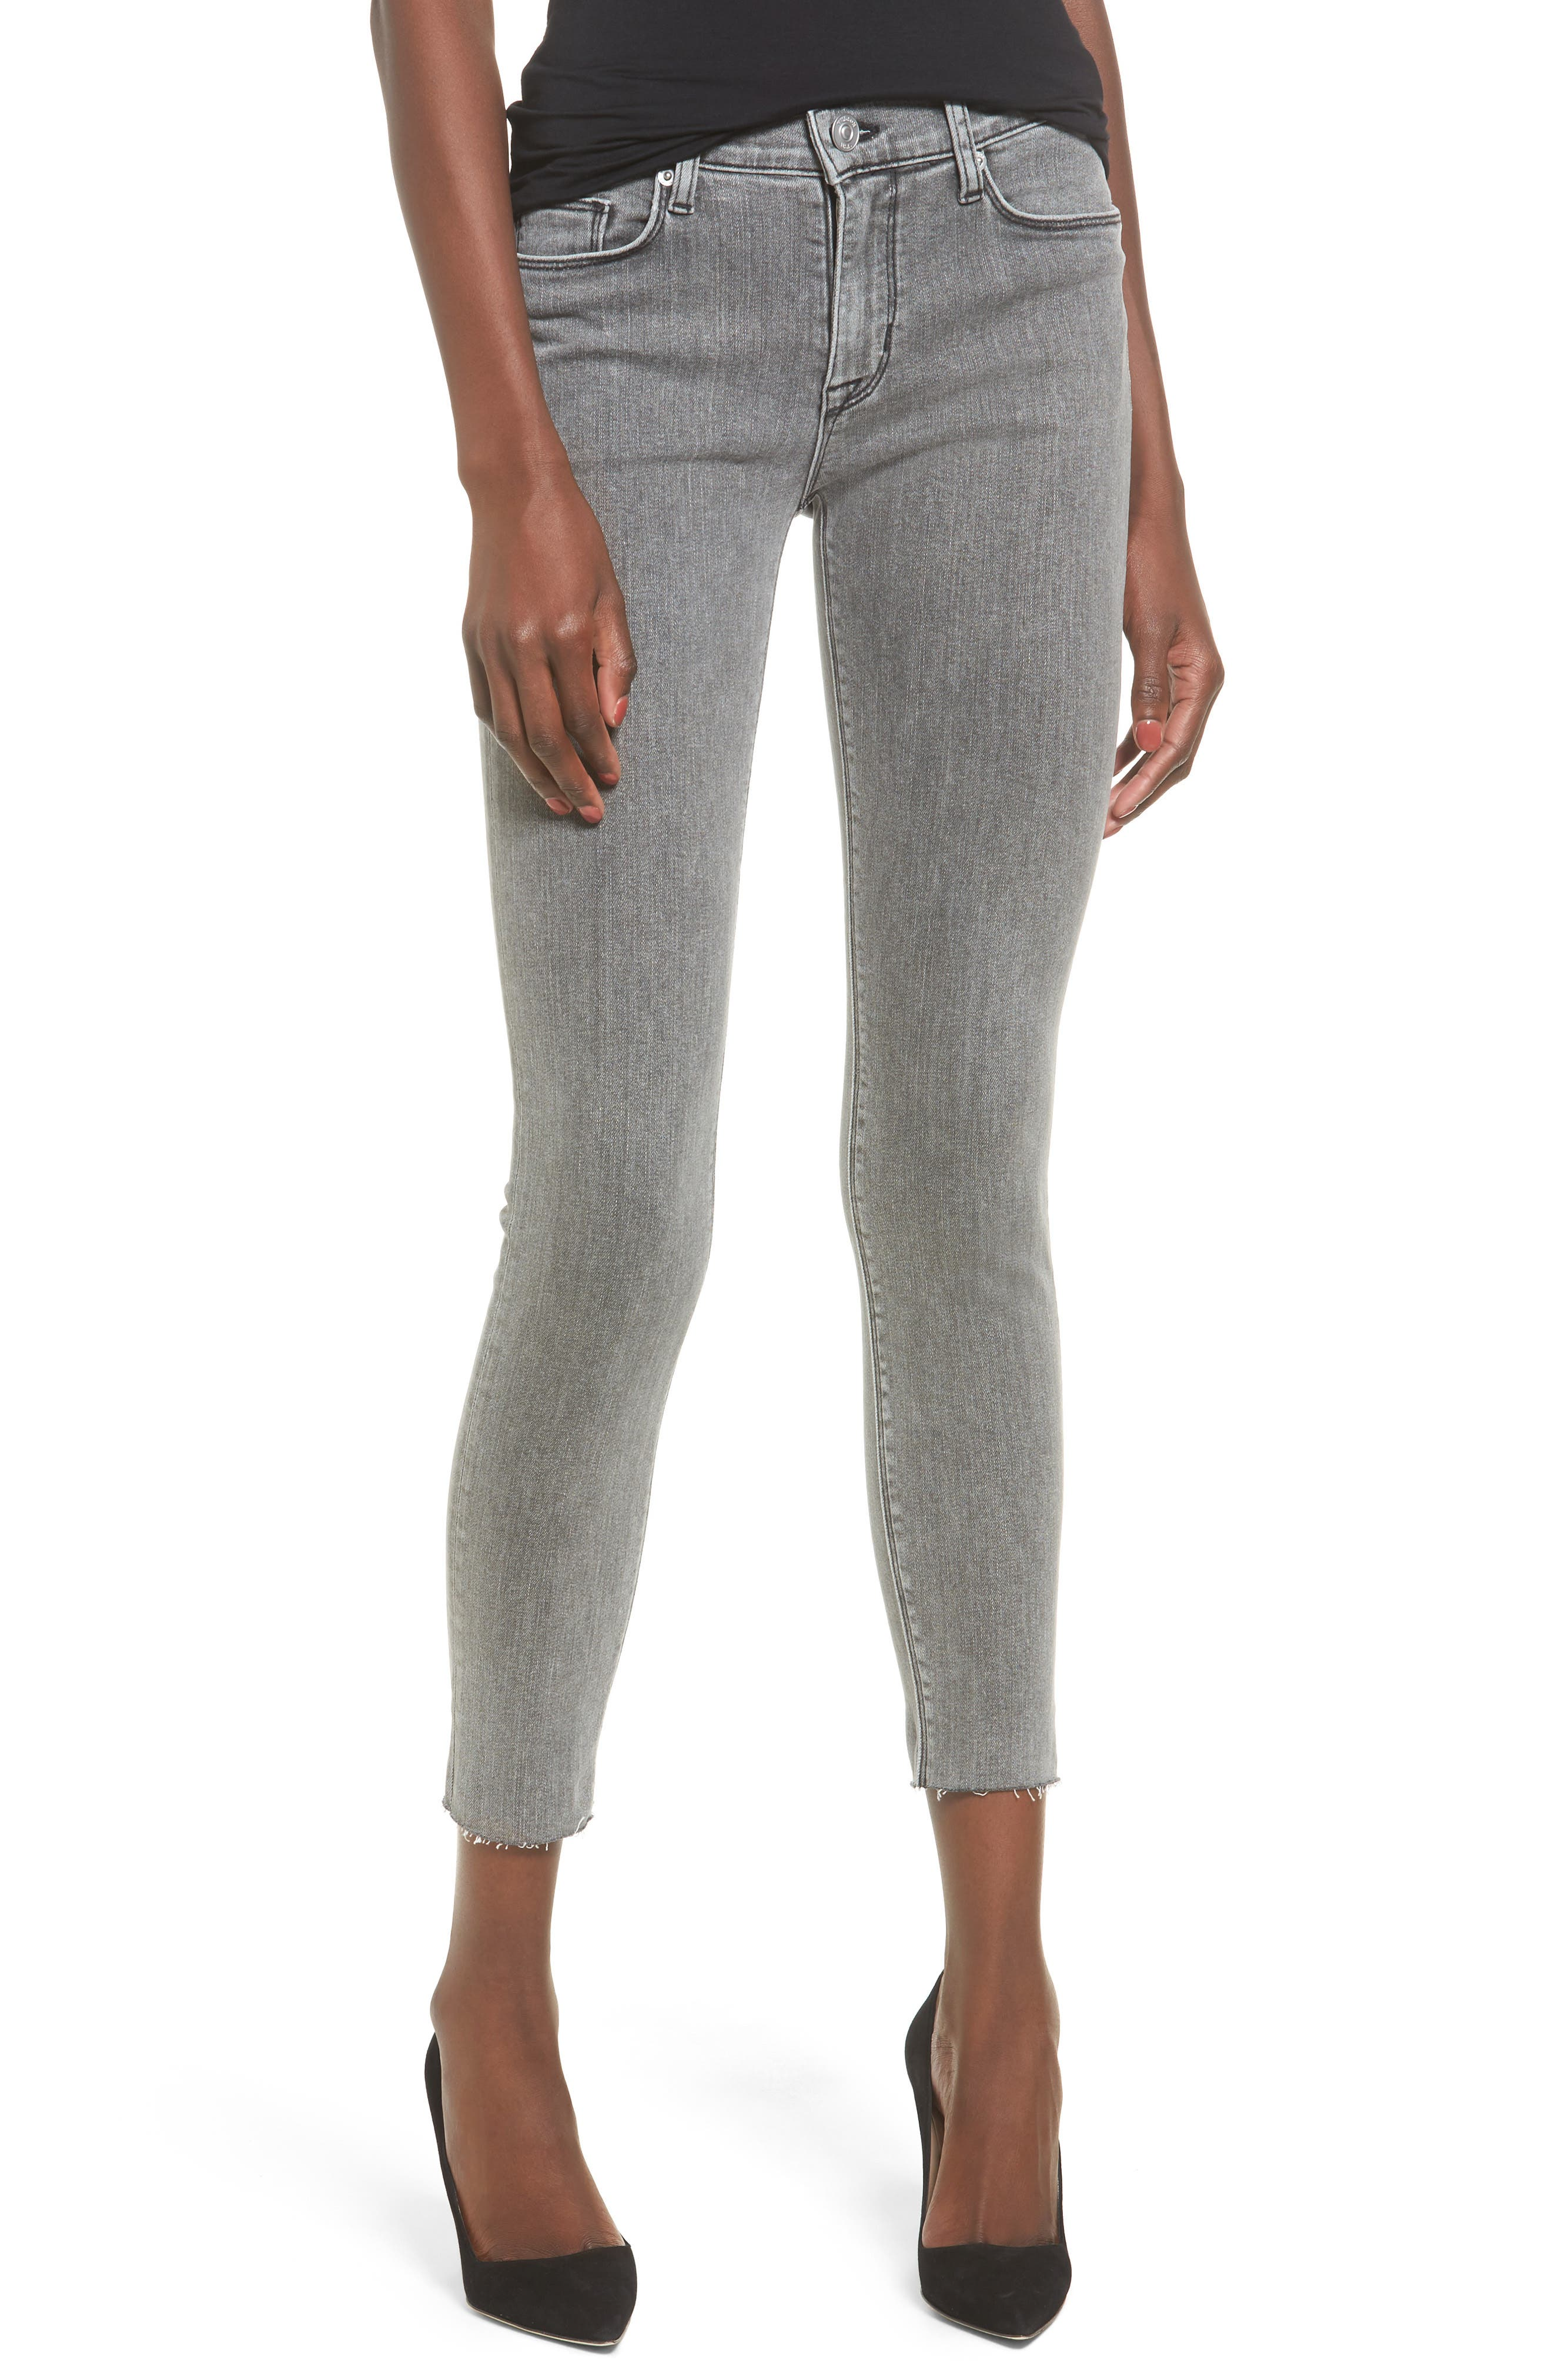 Alternate Image 1 Selected - Hudson Nico Ankle Super Skinny Jeans (Glossier)